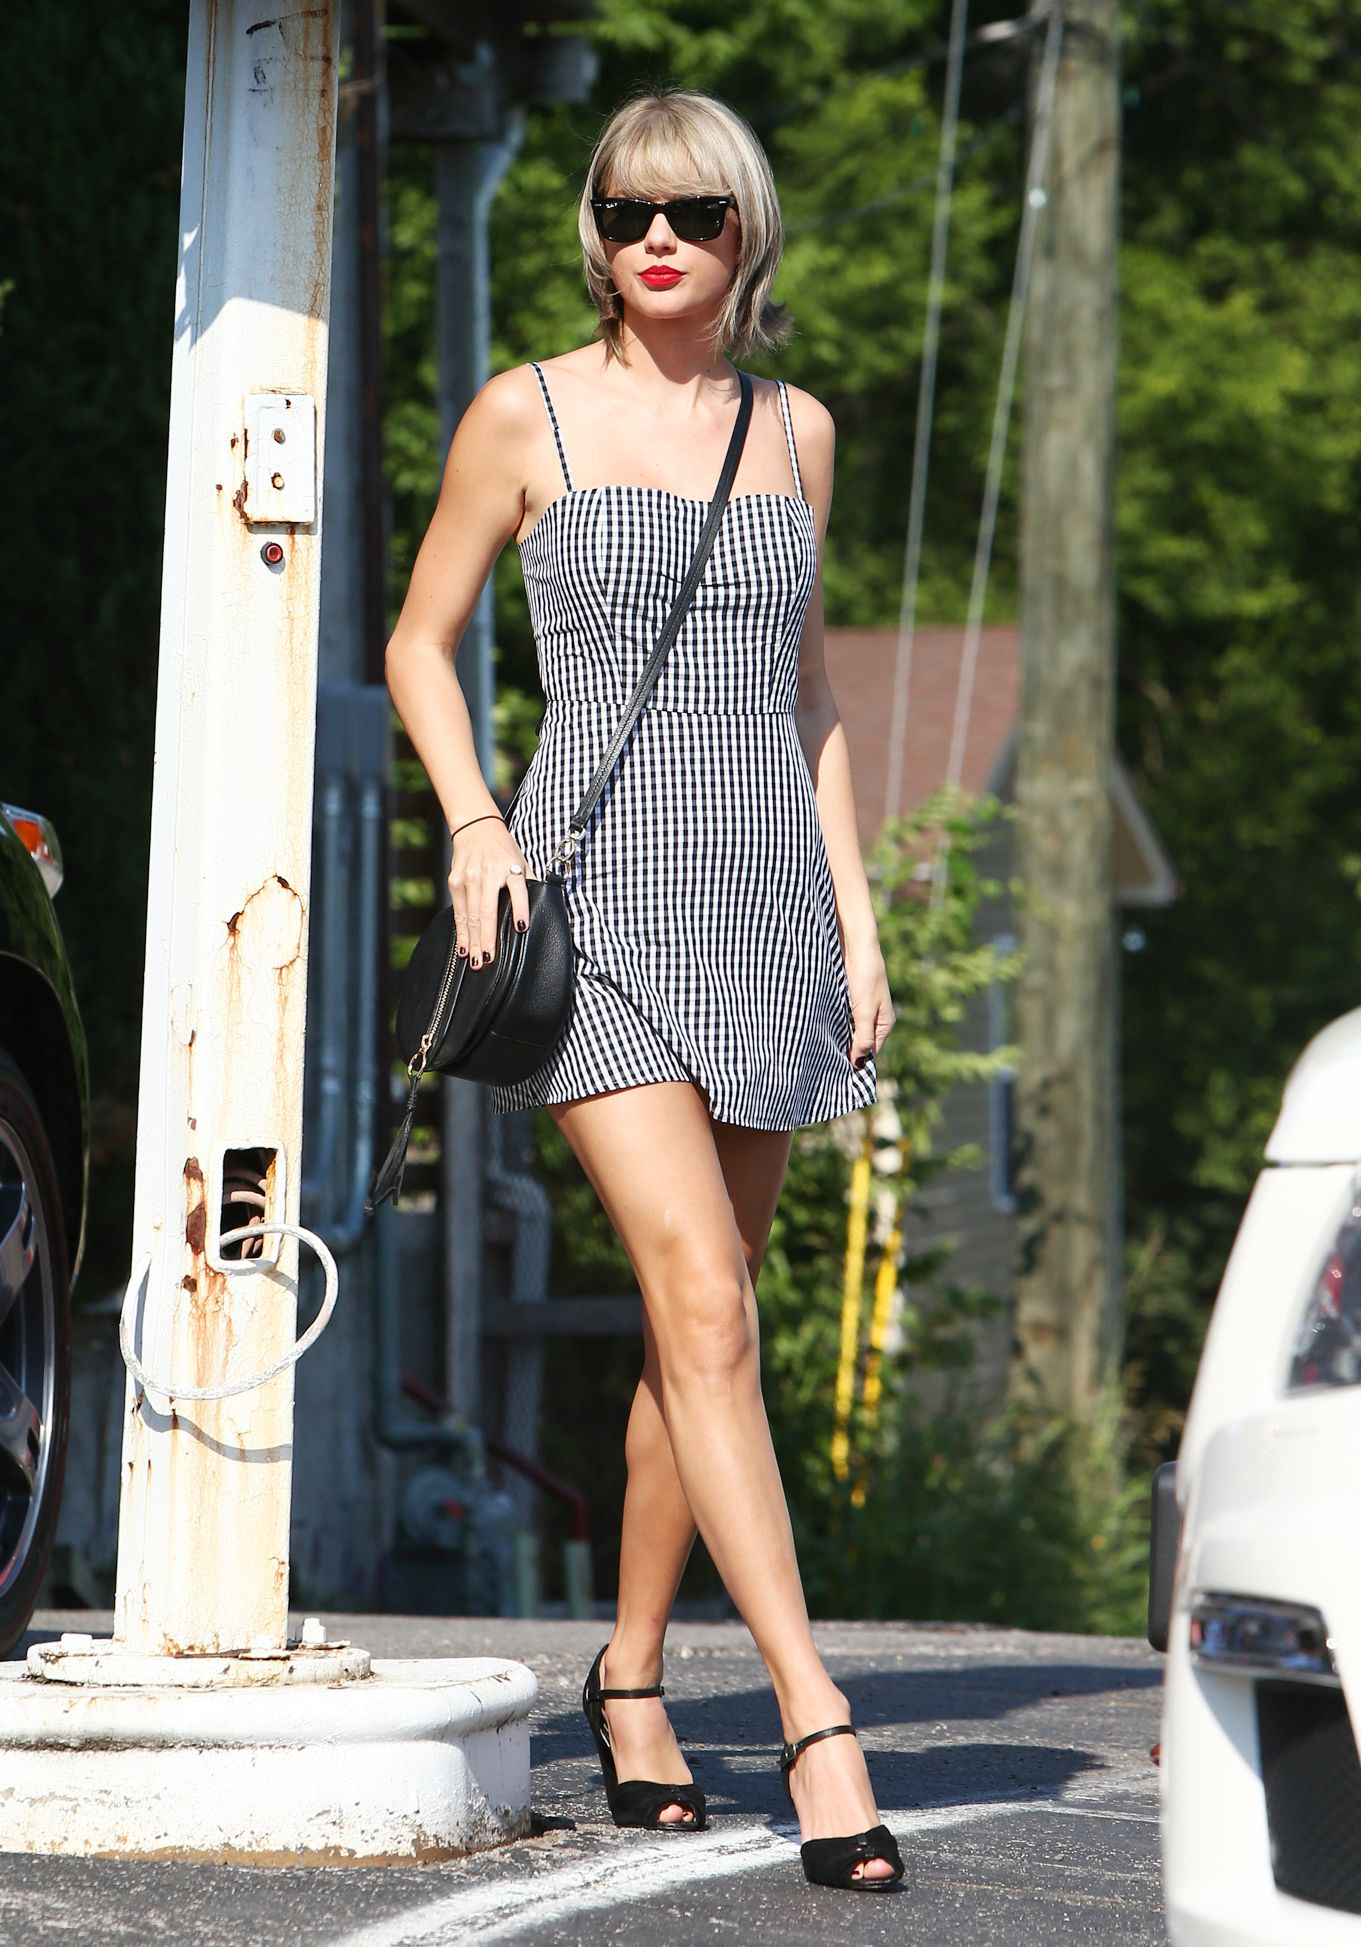 f392837279d Taylor Swift in Denim Crop Top and Shorts - Fashion and Beauty Pictures of Taylor  Swift